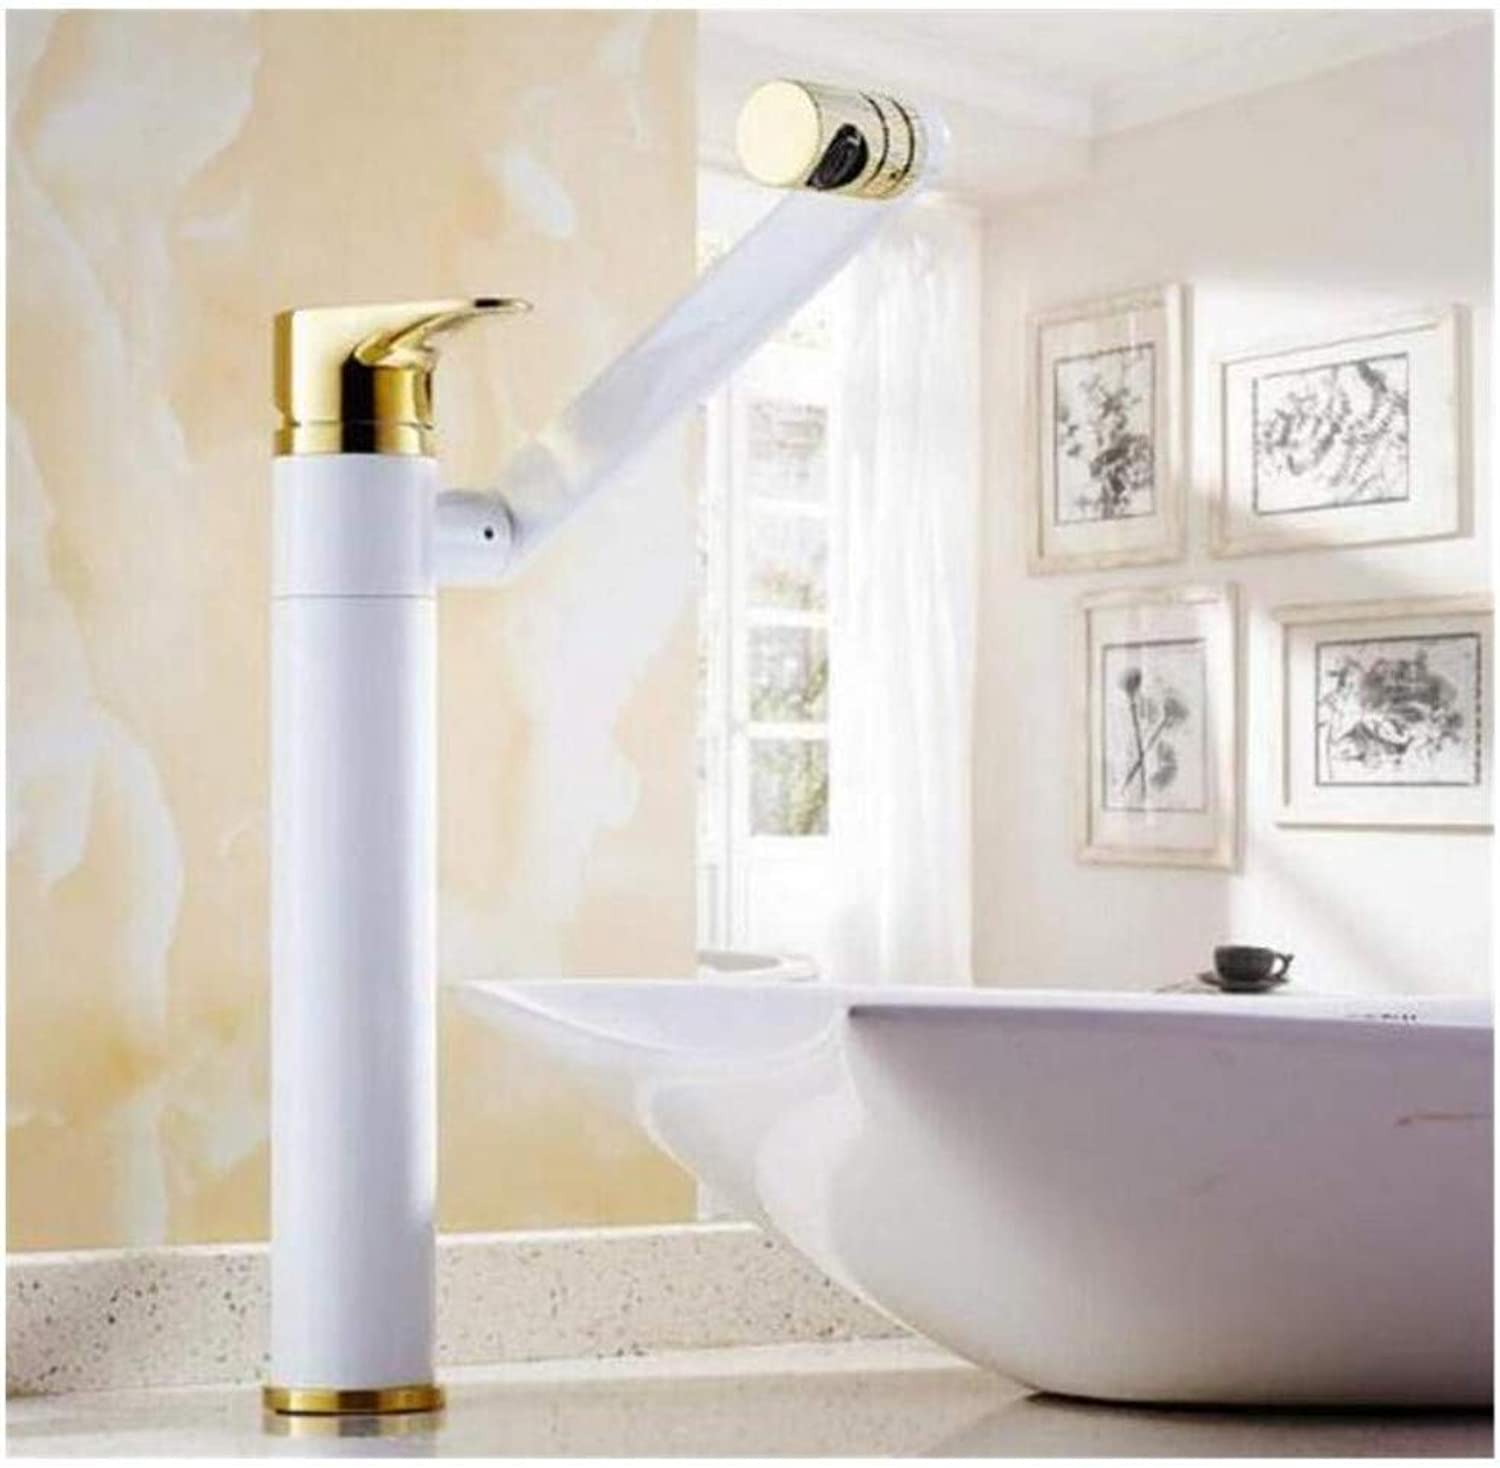 Chrome-Plated Adjustable Temperature-Sensitive Led Faucetfaucet Chrome Brass Hot and Cold Water Tap Sink Mixer Tap Wash Basin Faucet Basin Mixer